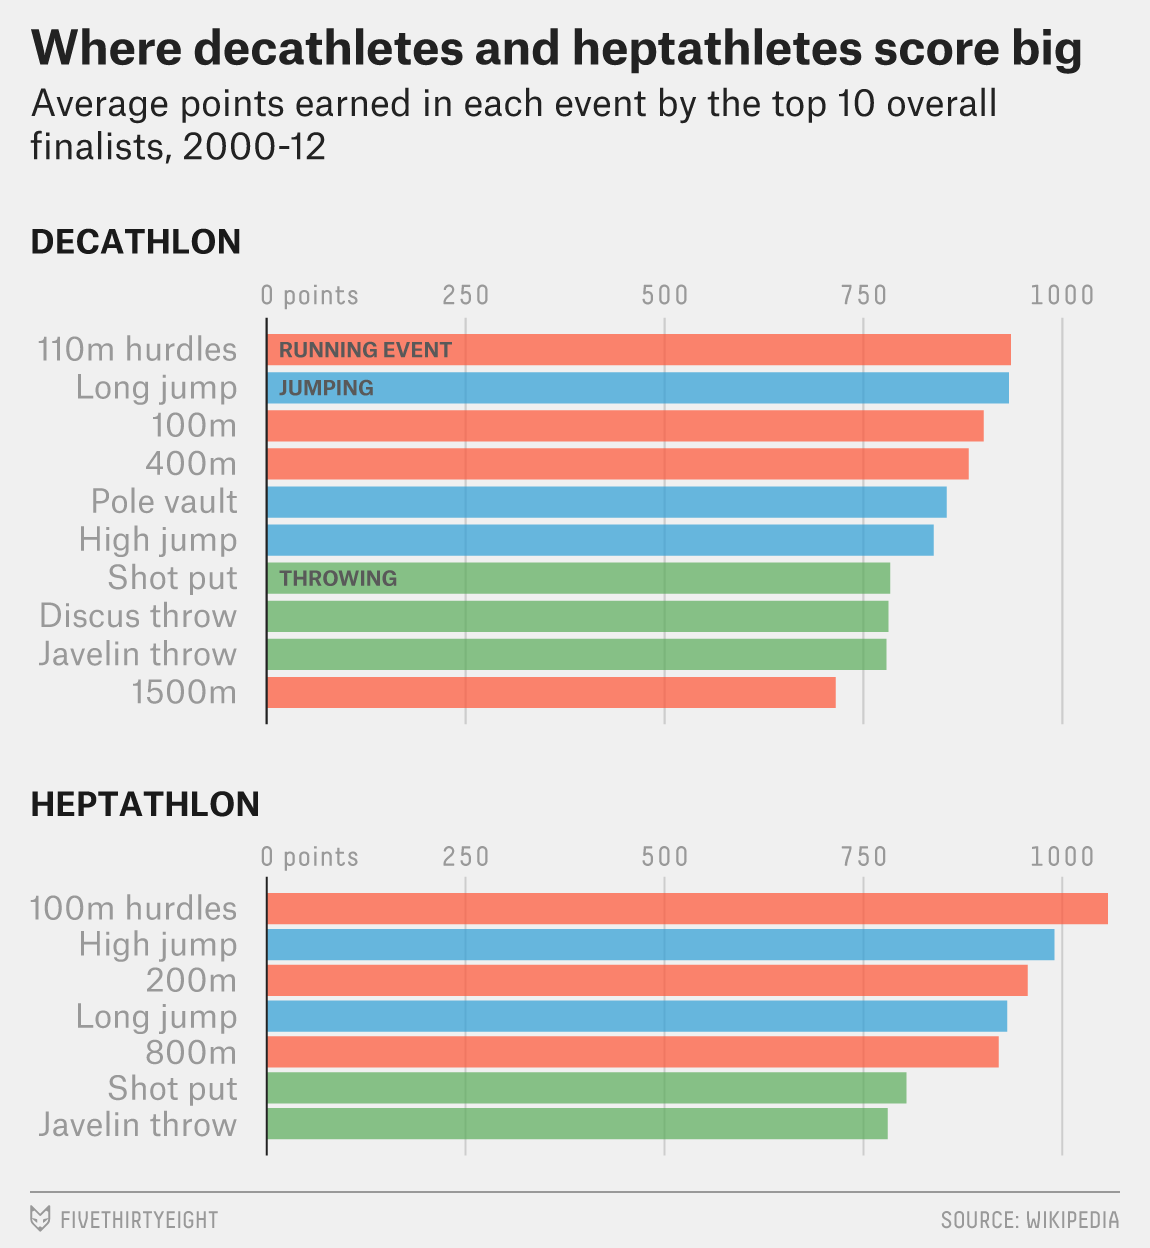 The Scoring For The Decathlon And Heptathlon Favors Running Over